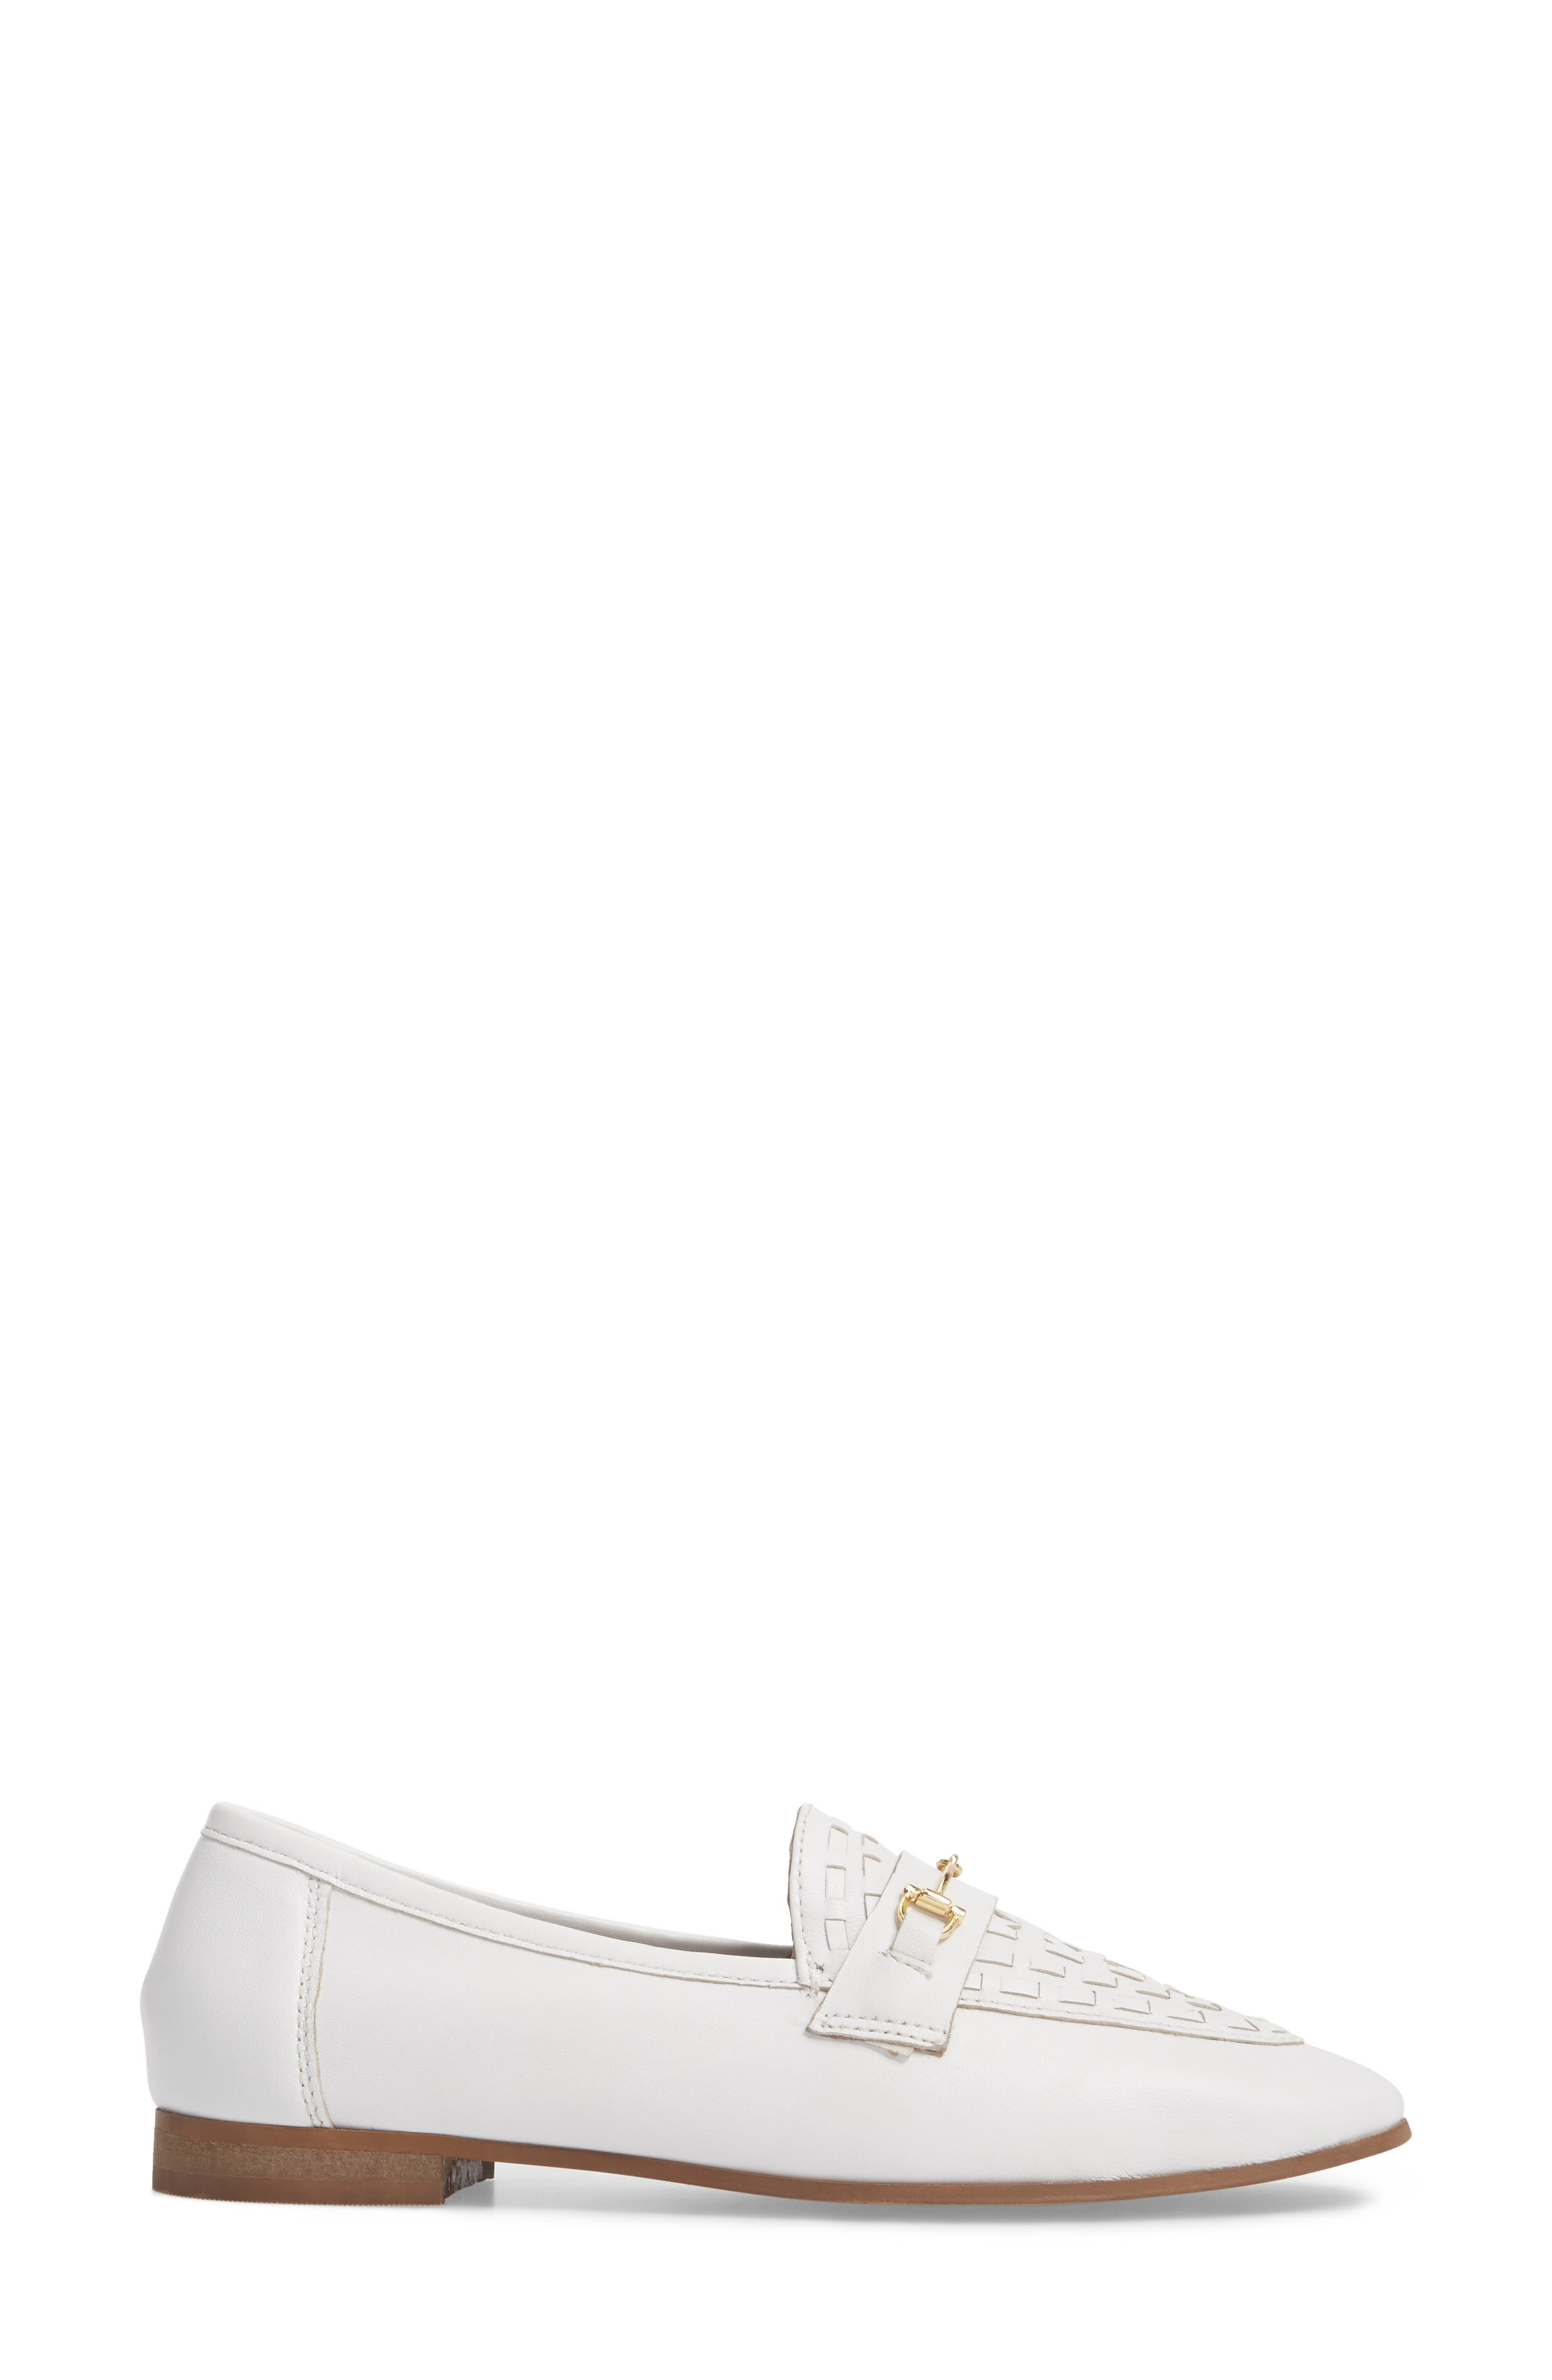 Kingley Woven Loafer,                             Alternate thumbnail 3, color,                             WHITE